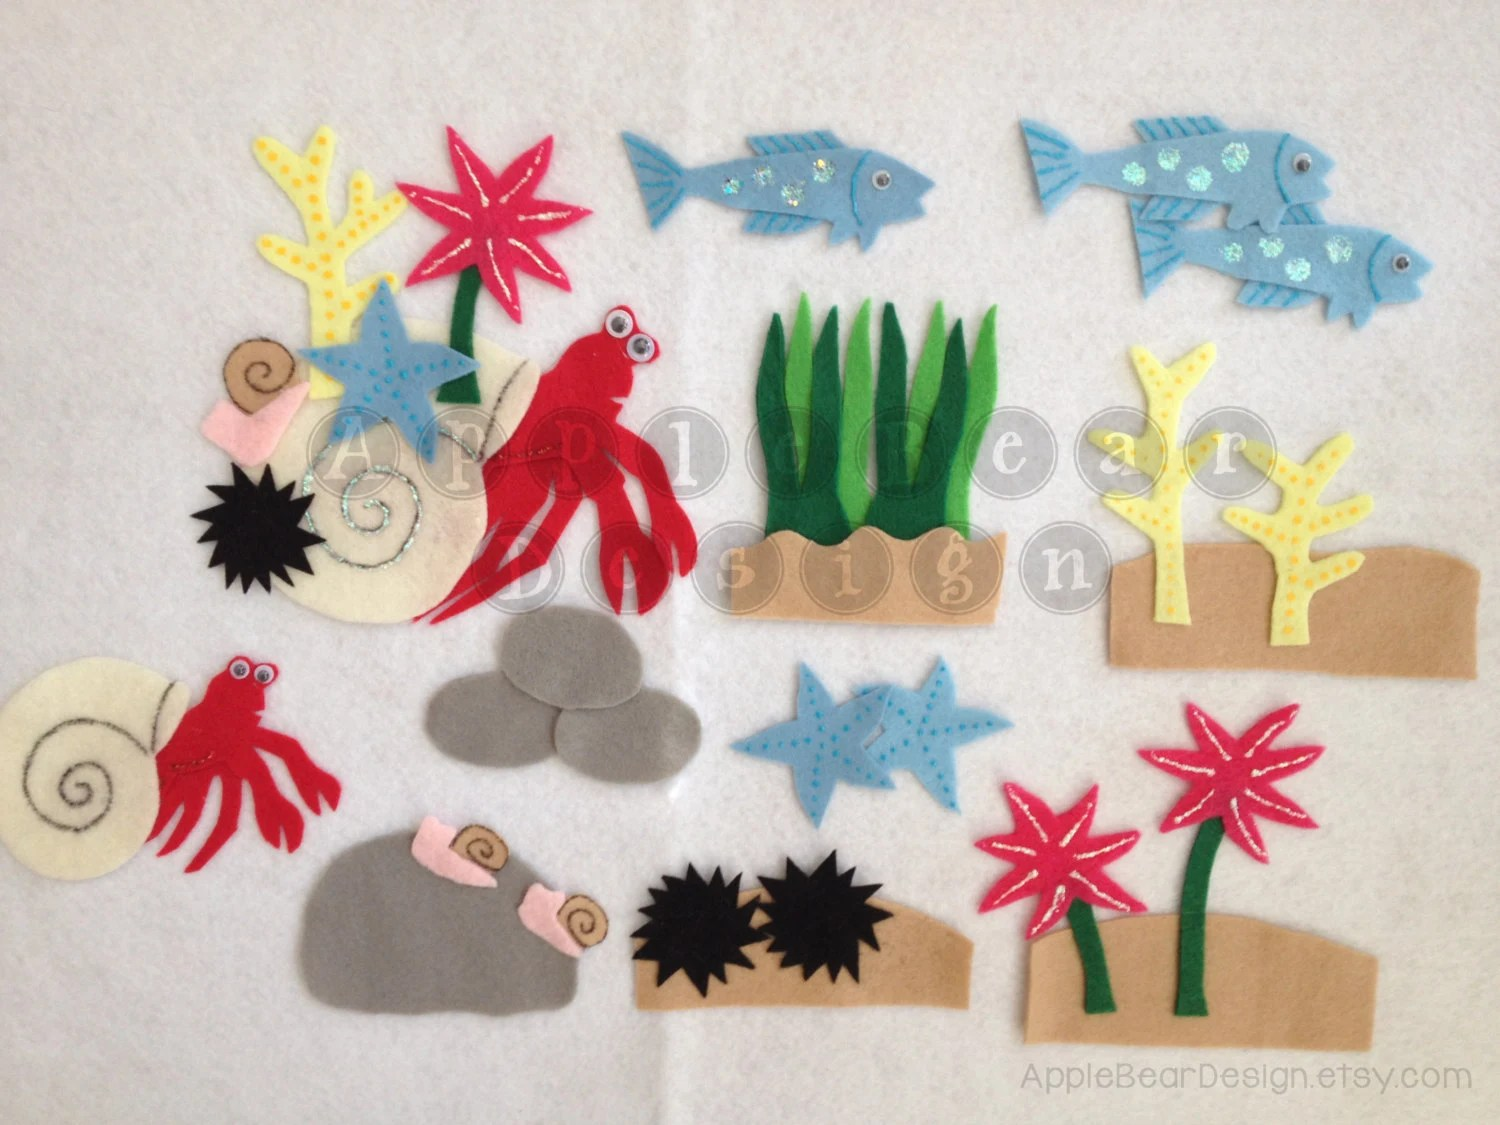 Felt Board Story Set A House For Hermit Crab